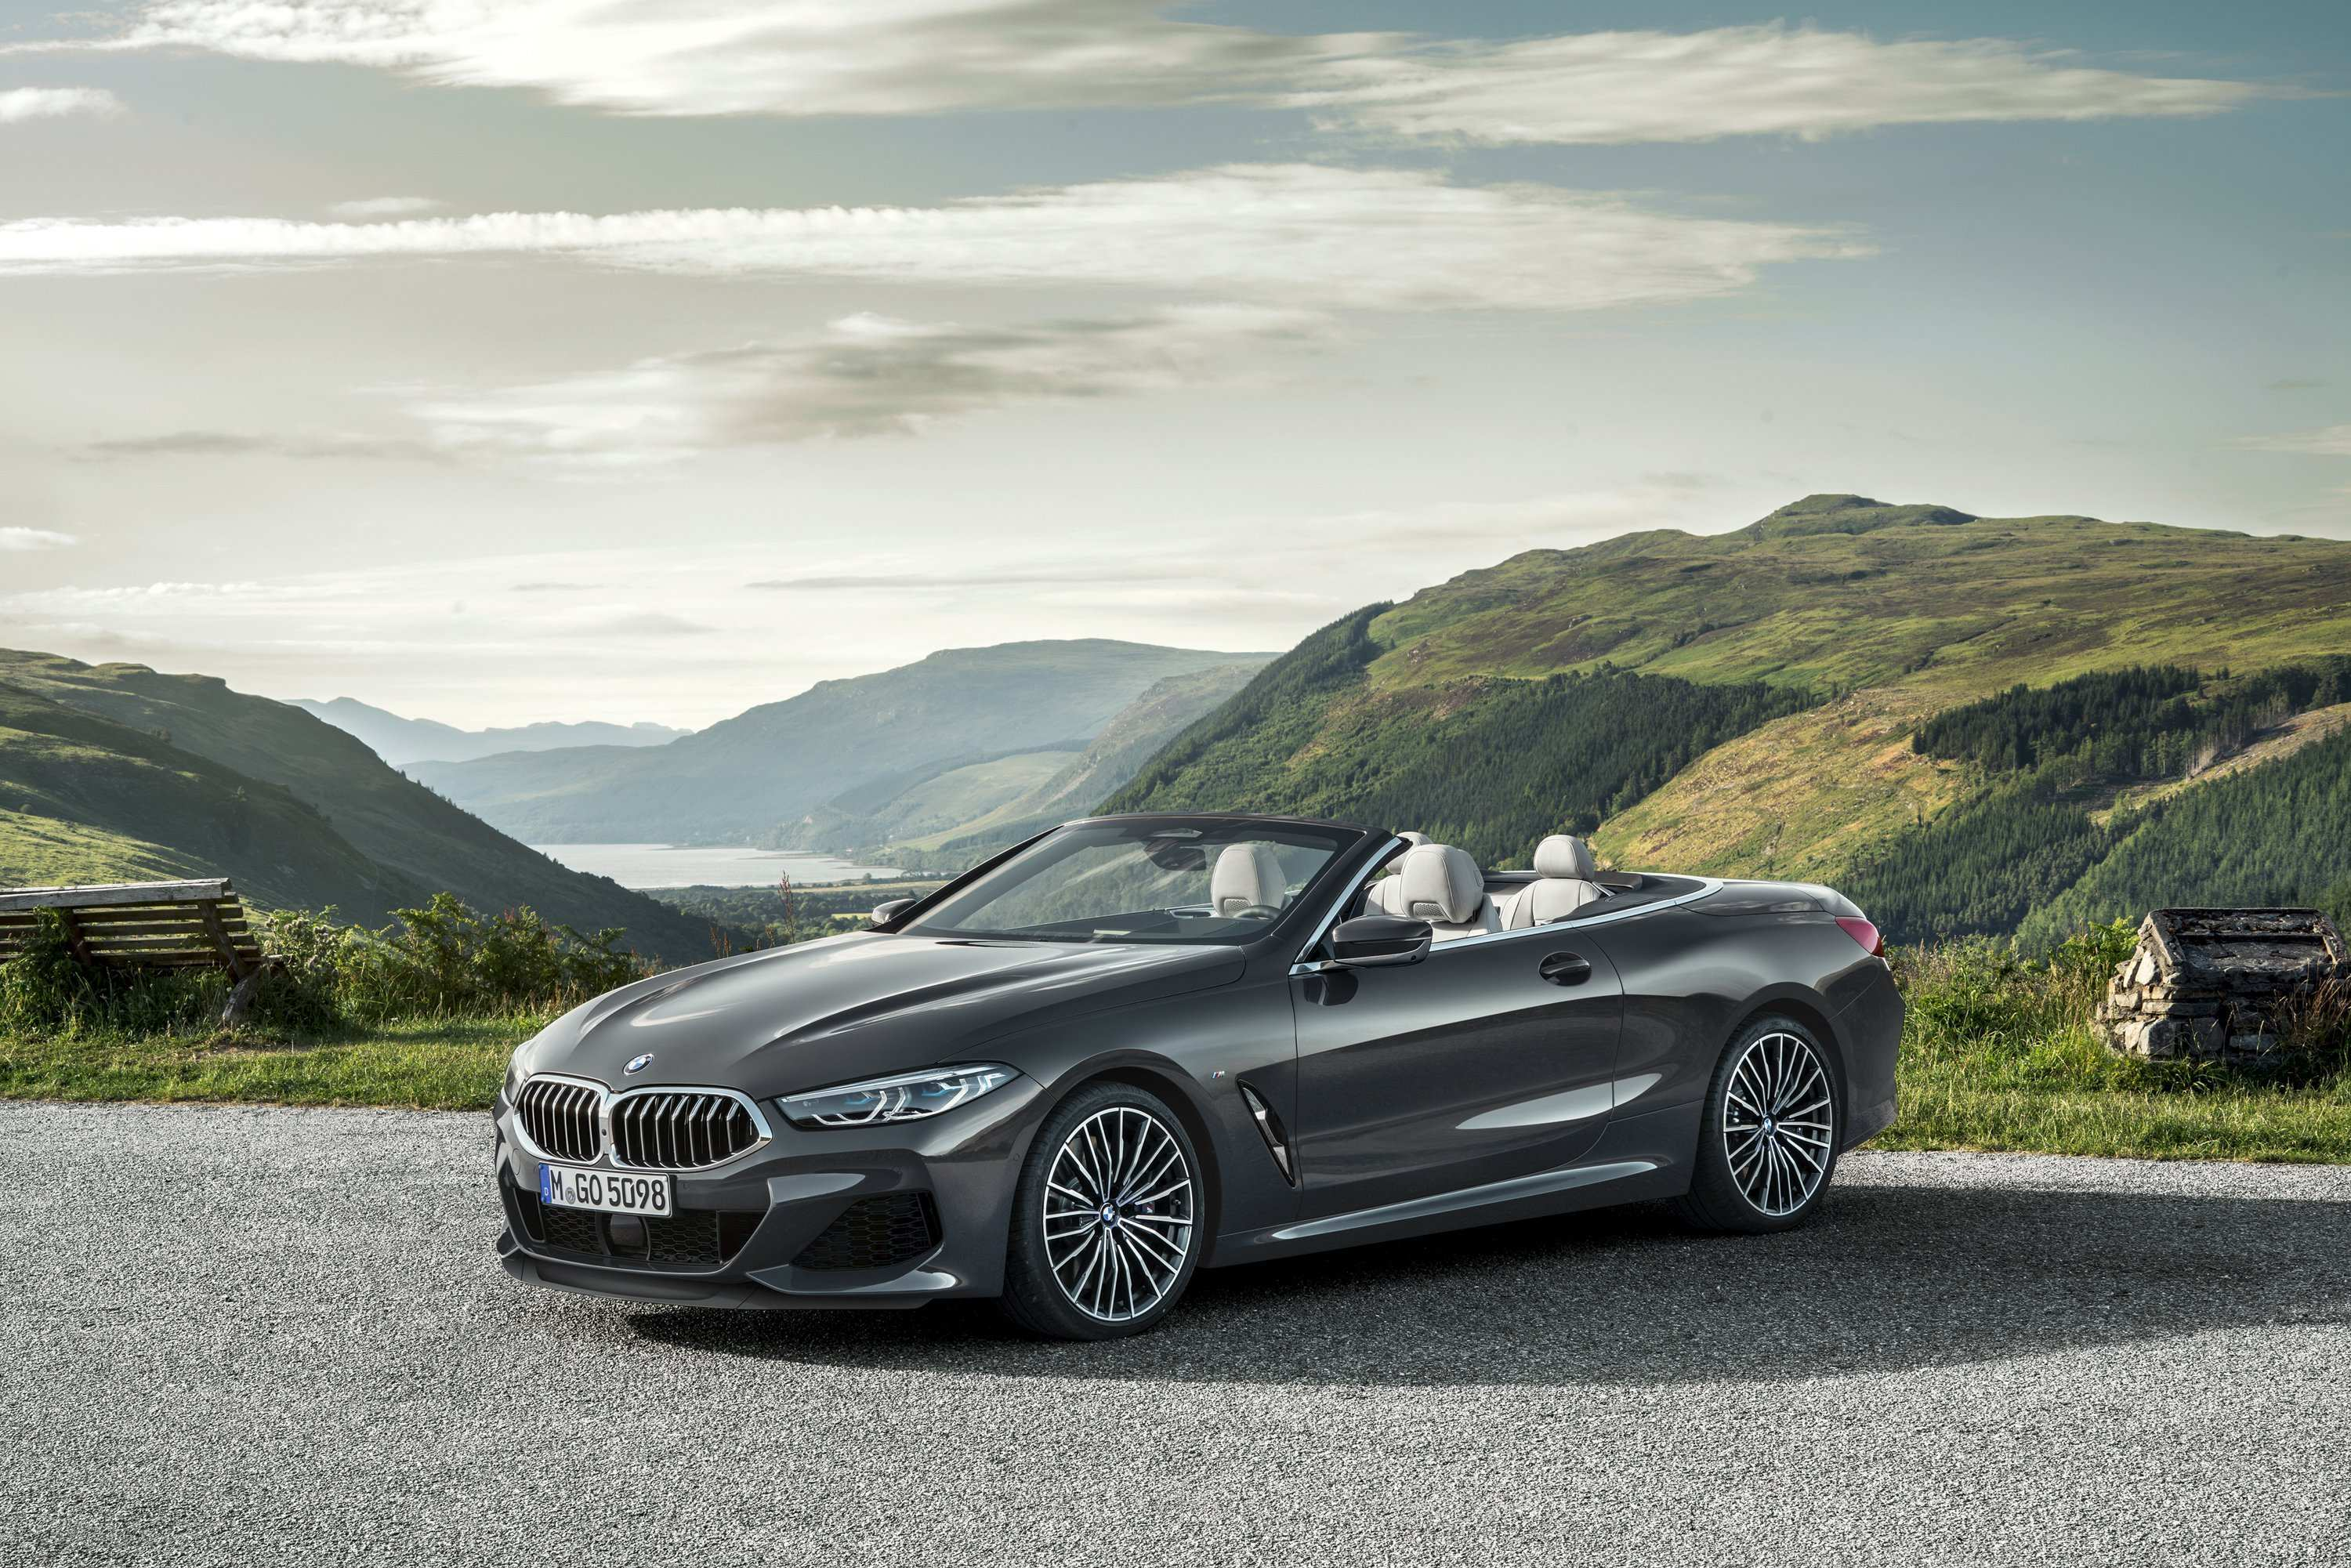 72 All New 2020 BMW 6 Series Price And Review